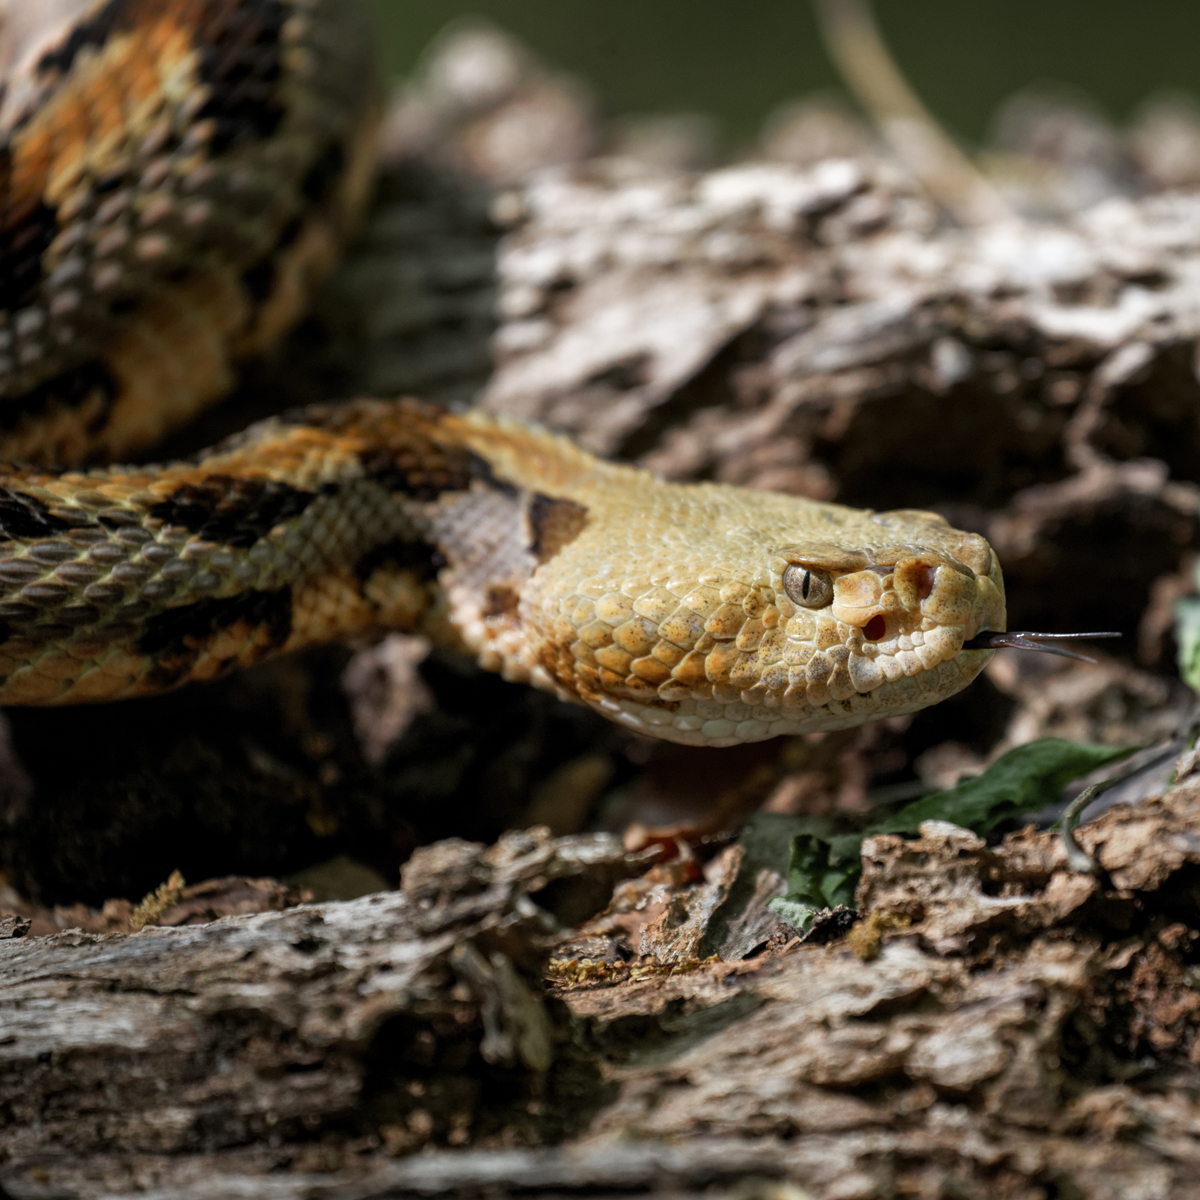 Where did rattlesnakes come from?